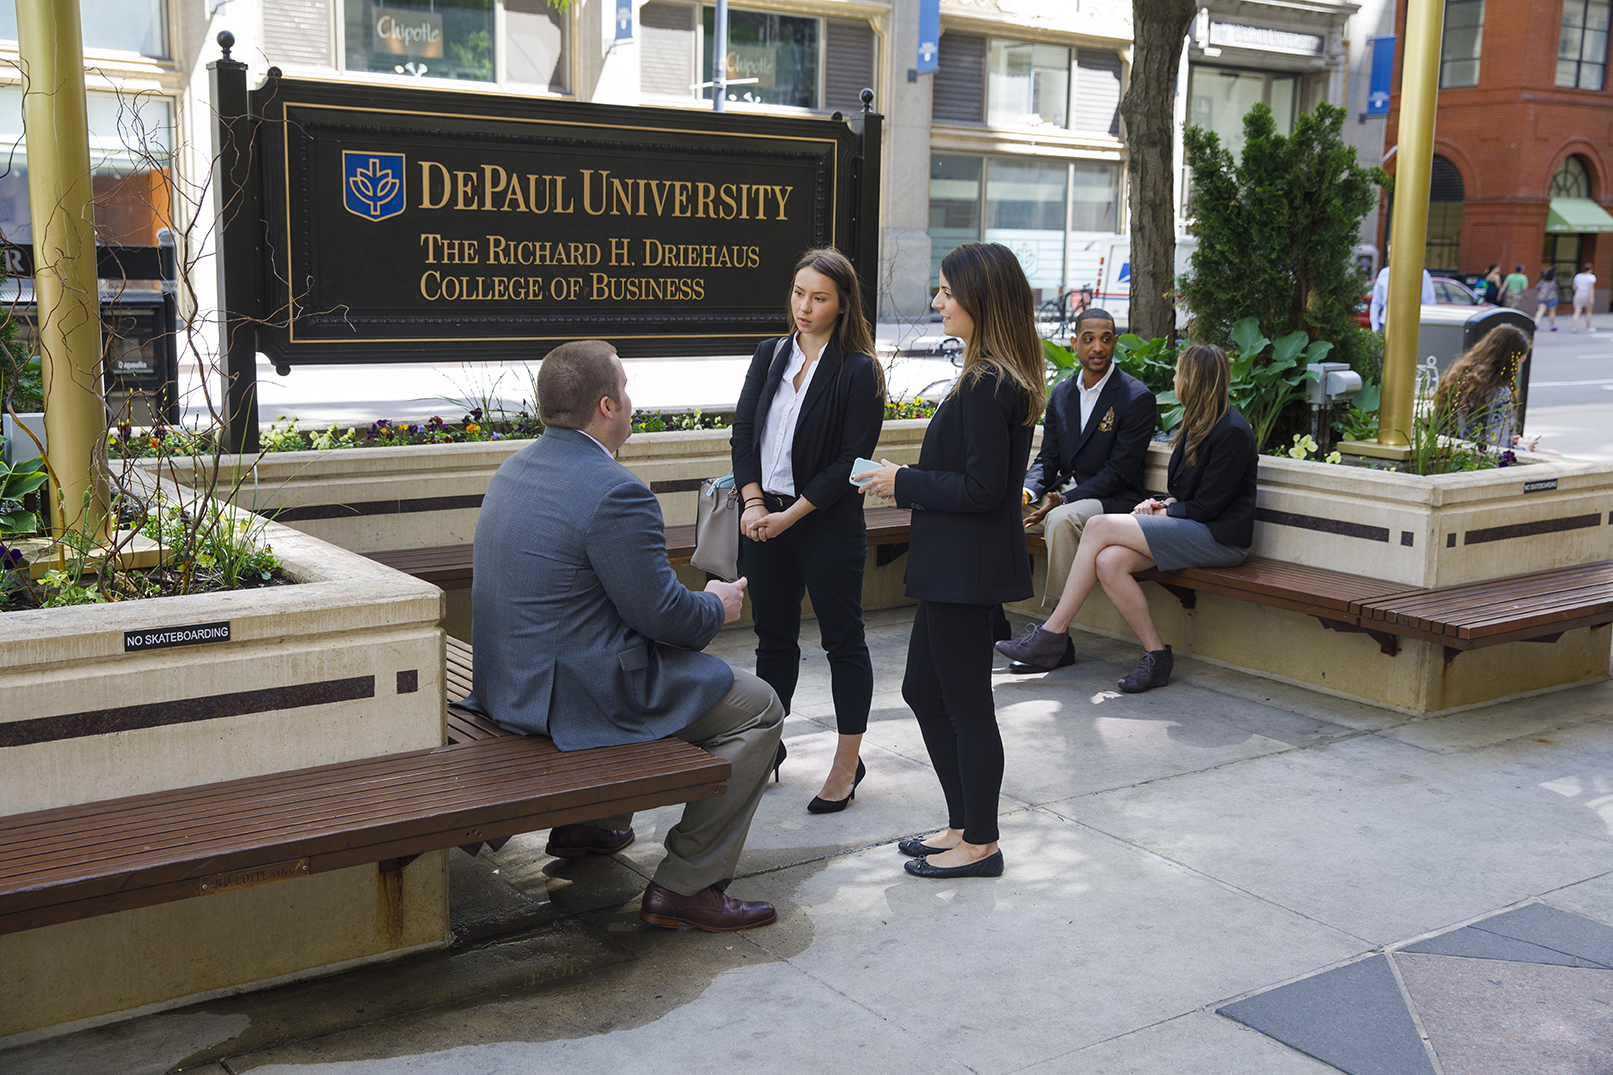 Driehaus College of Business students in Loop Campus